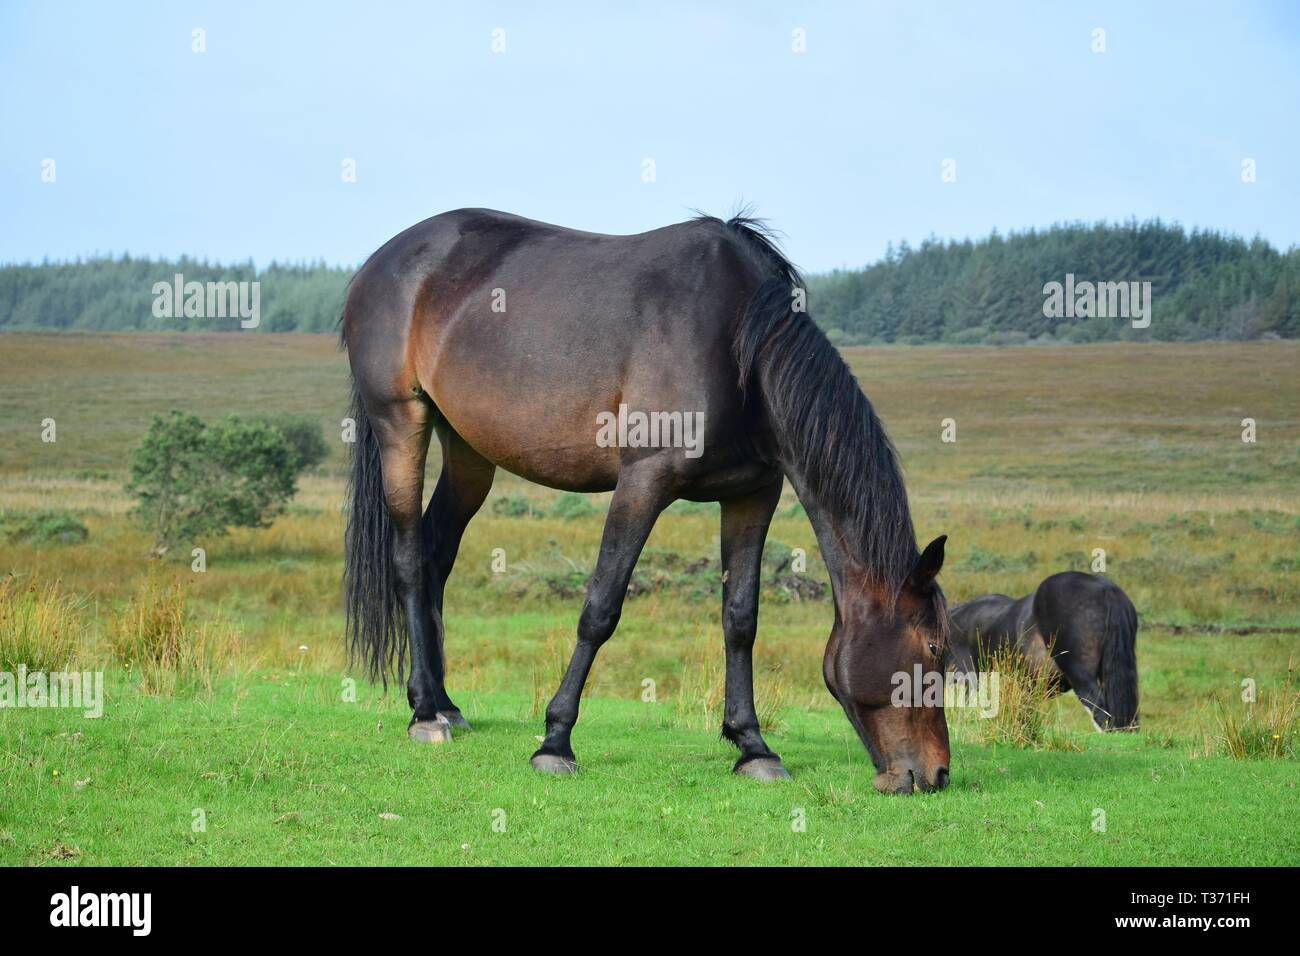 Grazing bay horse in Ireland. Beautiful landscape and another horse in the background. Stock Photo